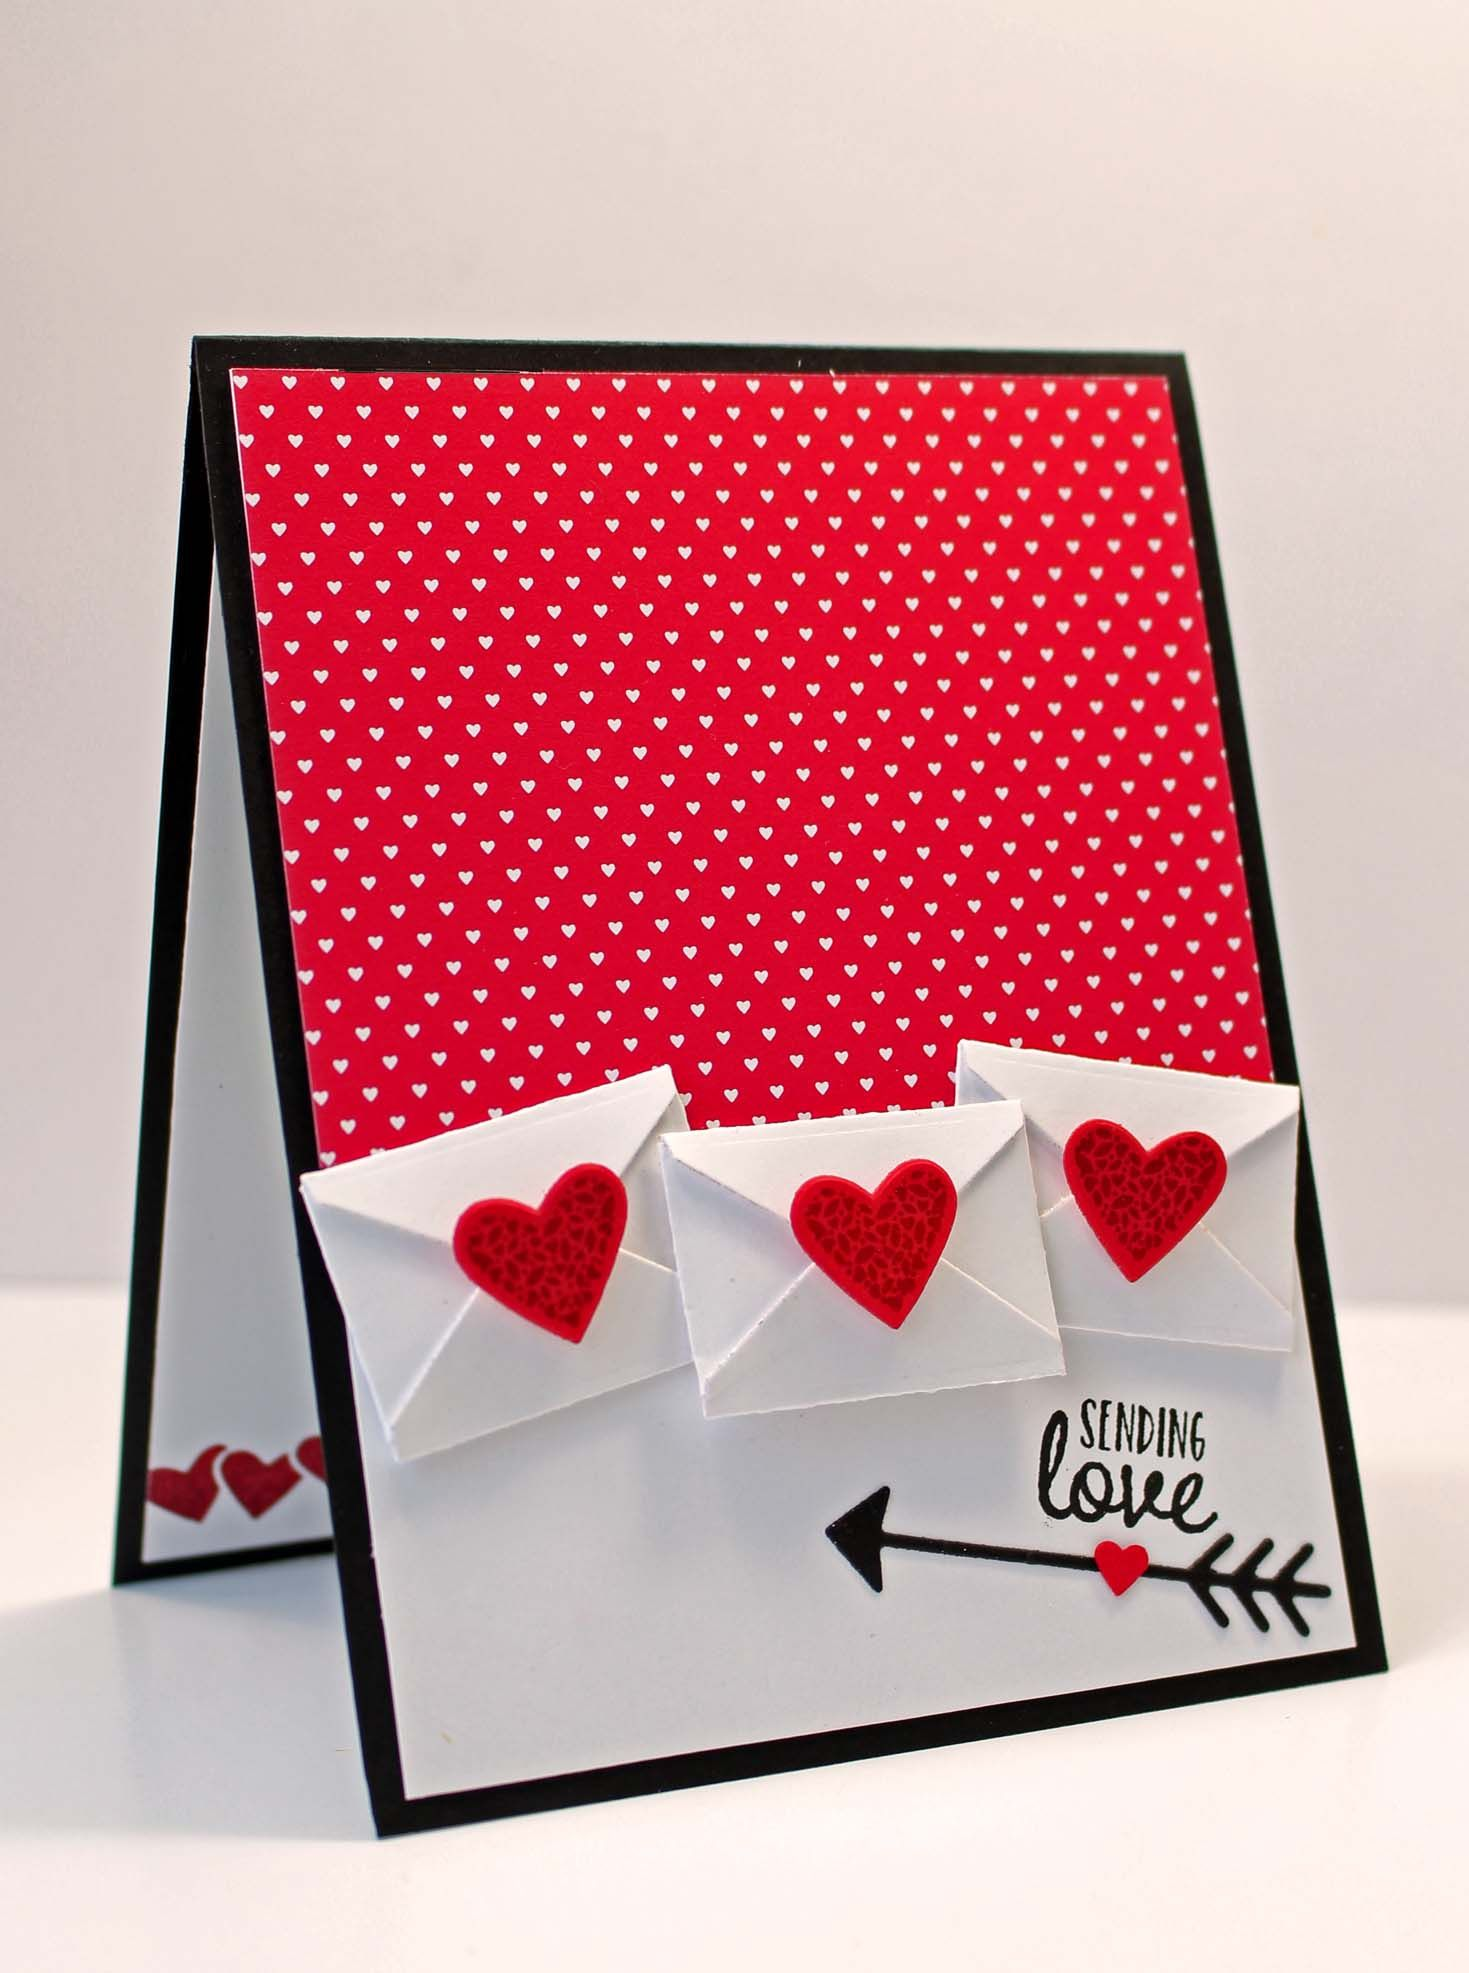 Valentine scrapbook ideas for him - Hey Guys I Have Been Struggling With Making Enough Cards I Need To Make More Cards In Less Time Do You Feel Like That Do You Often Think You Would Send